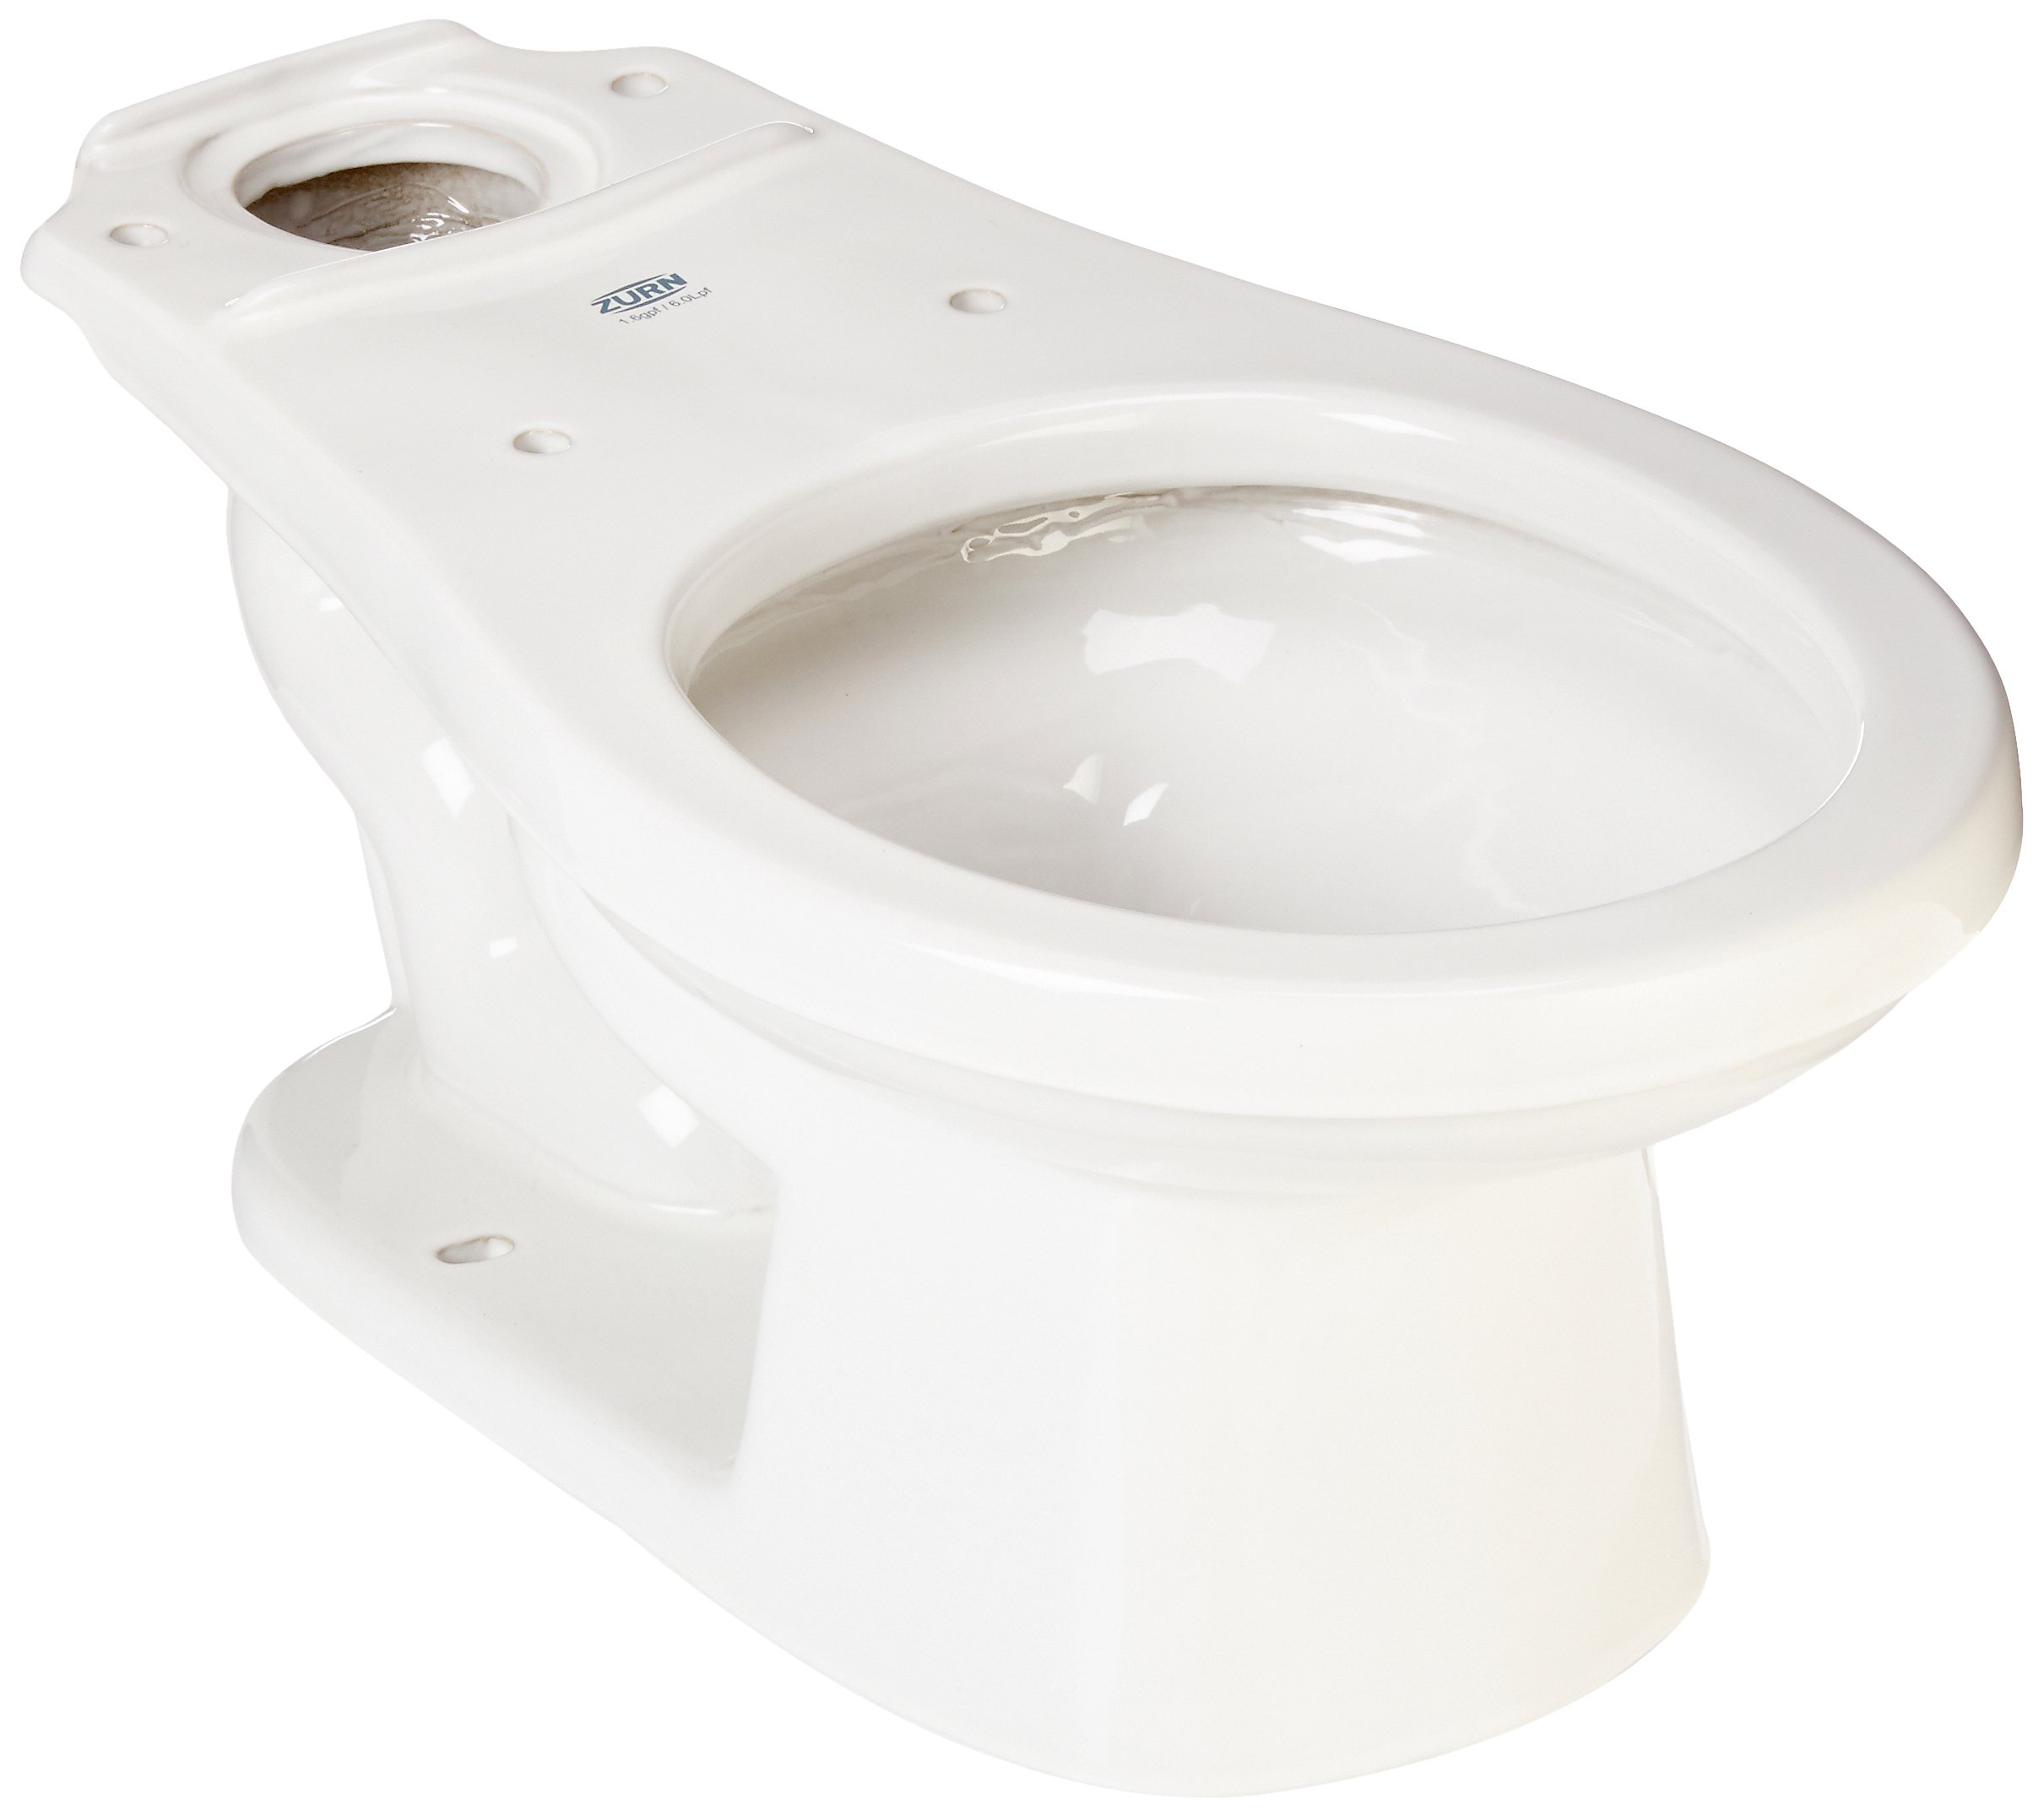 Zurn Z5590-TNK Tank, Children's 1.6 gpf Two-Piece Toilet